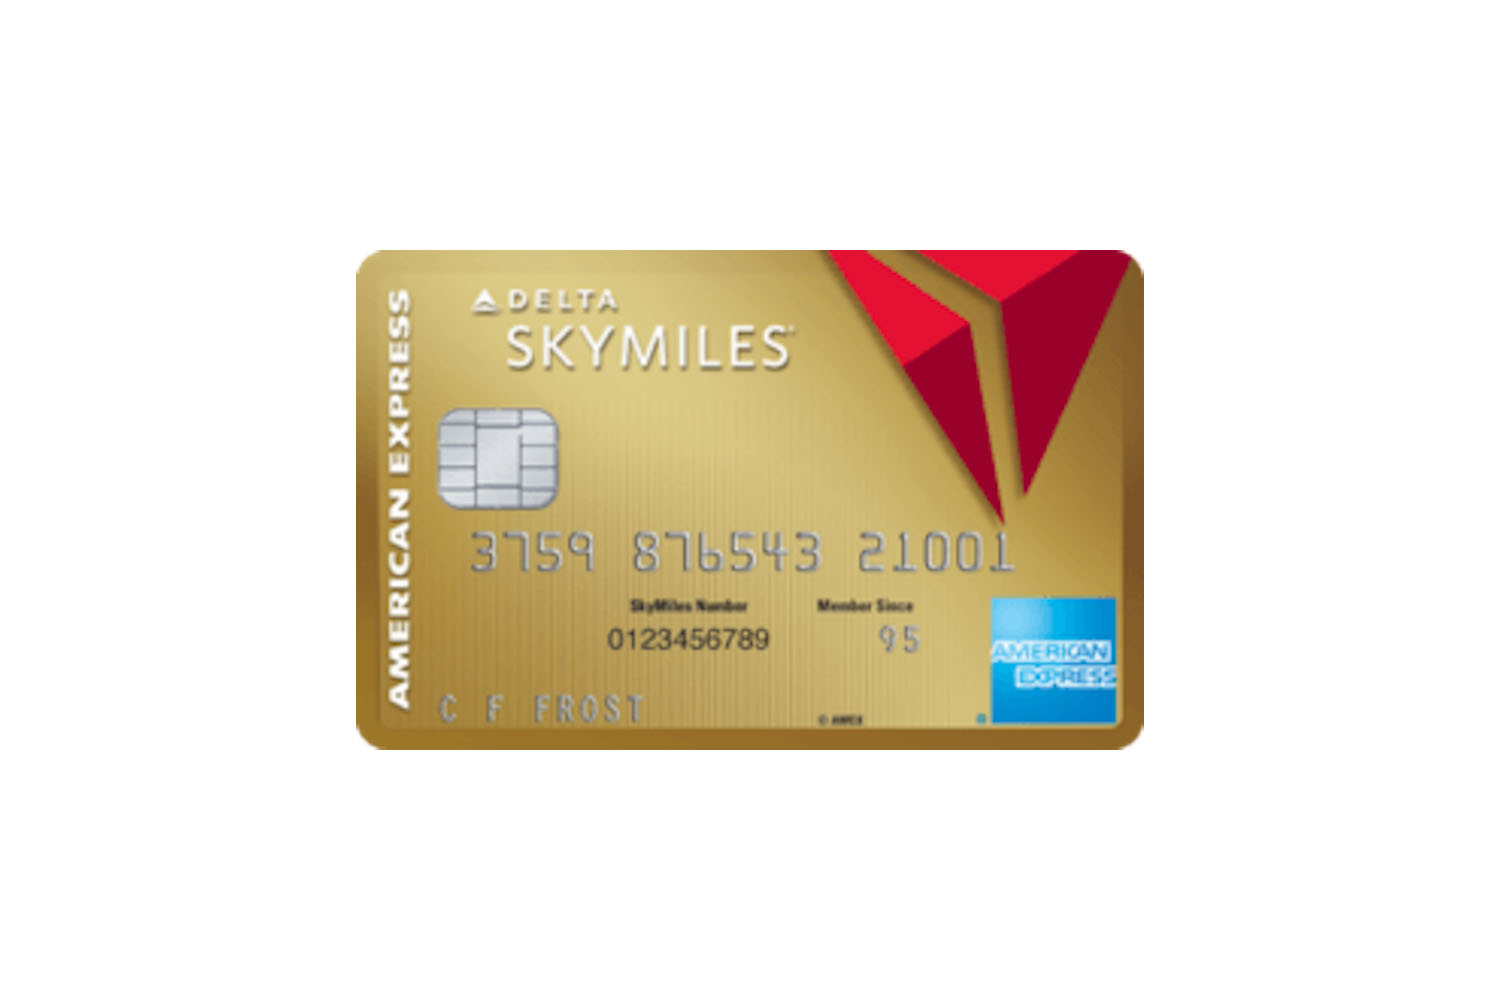 American Express Gold Skymiles